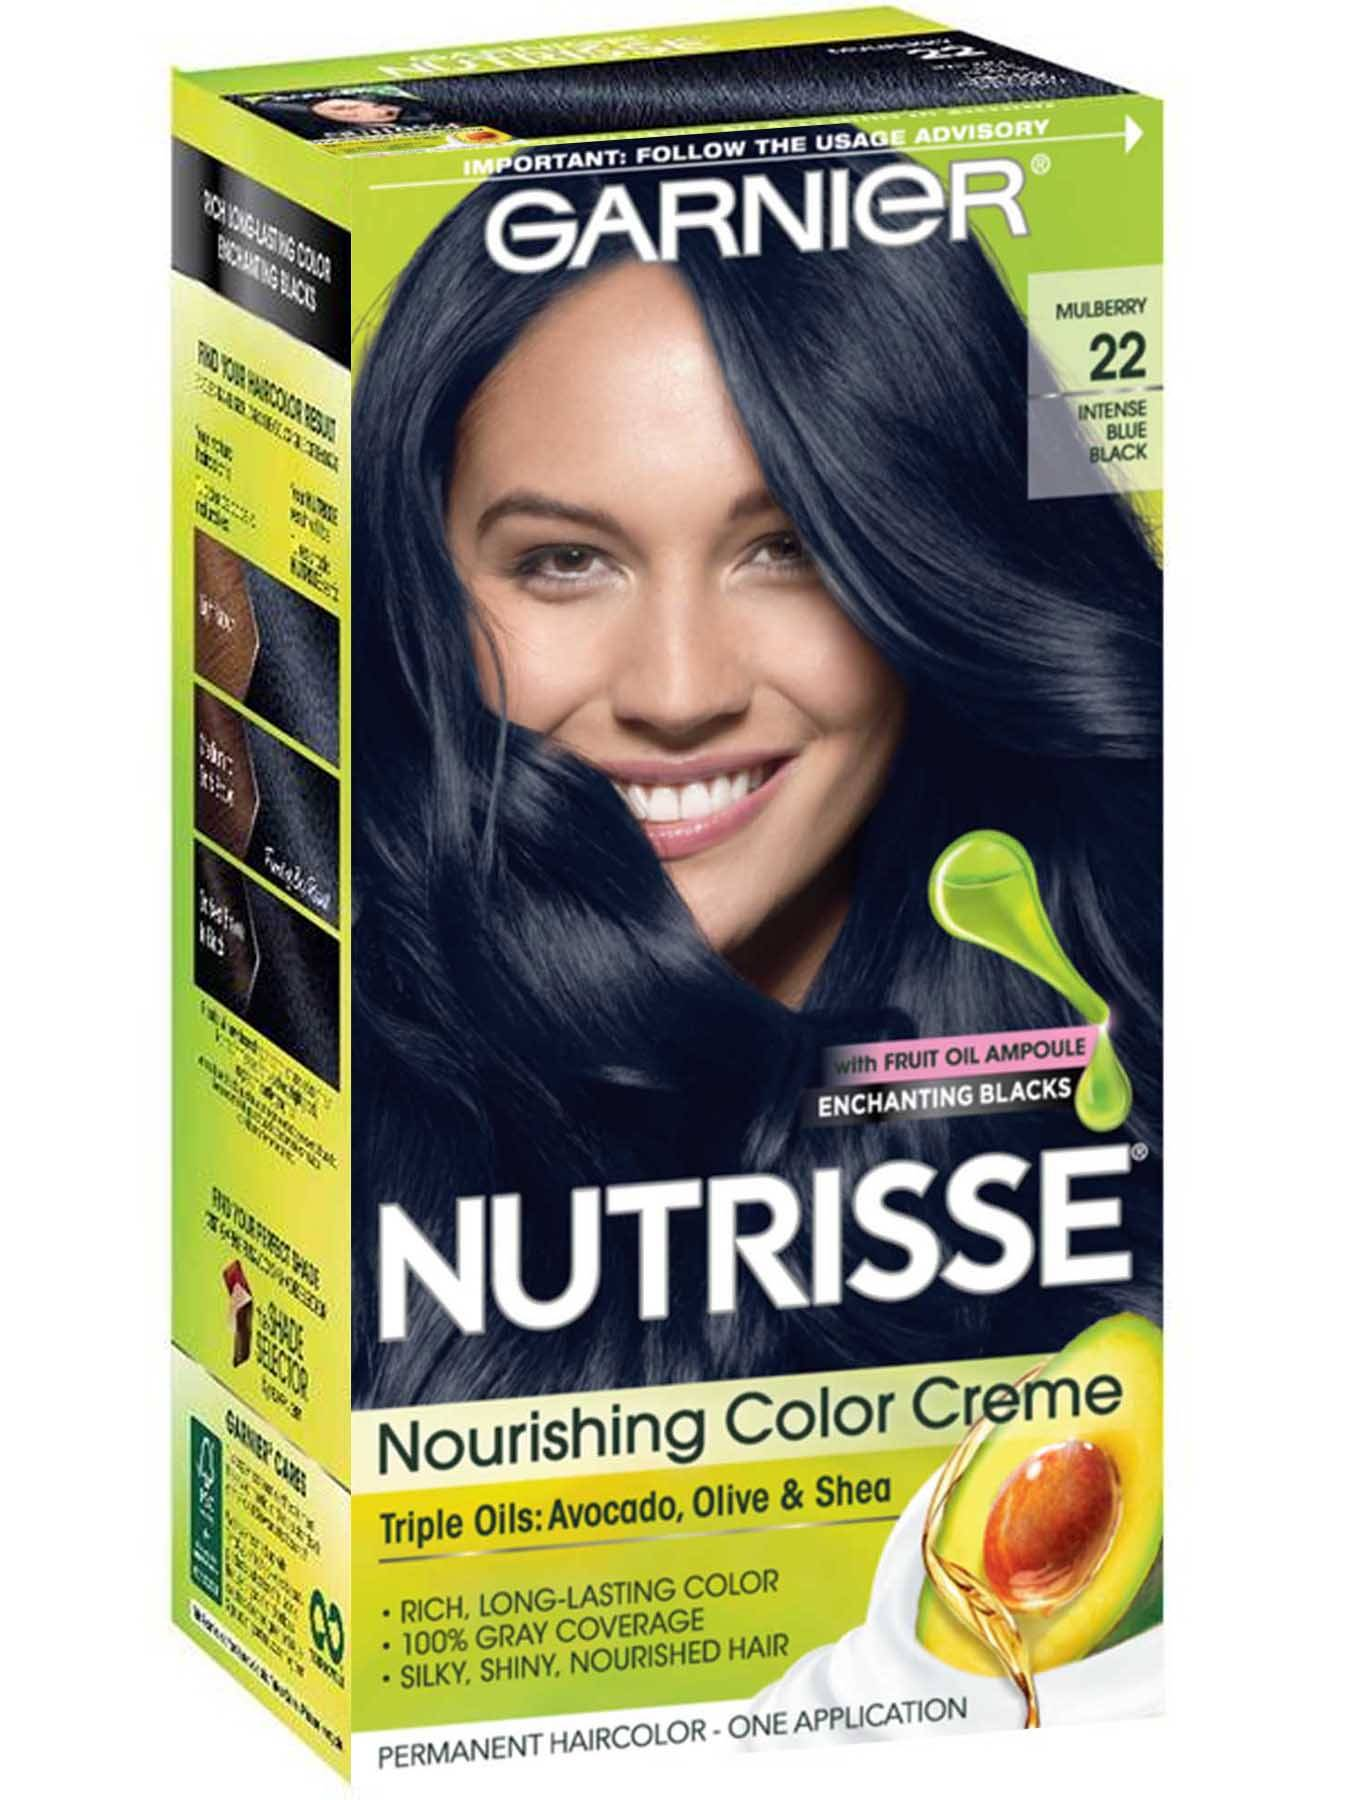 Nourishing Color Creme 22 - Intense Blue Black Hair Color - Garnier